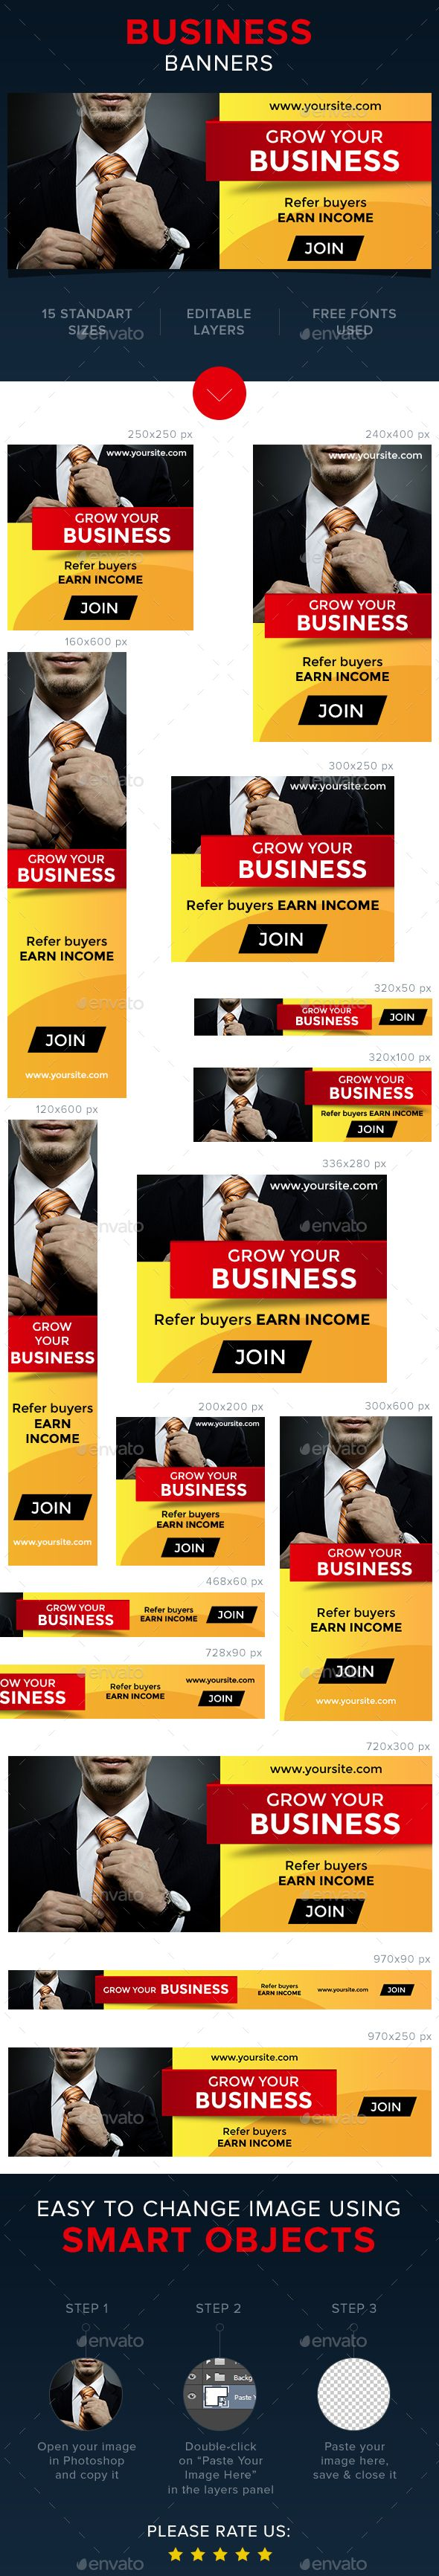 Business Web Banners Template PSD #design #ads Download: http://graphicriver.net/item/business-banners/13755172?ref=ksioks